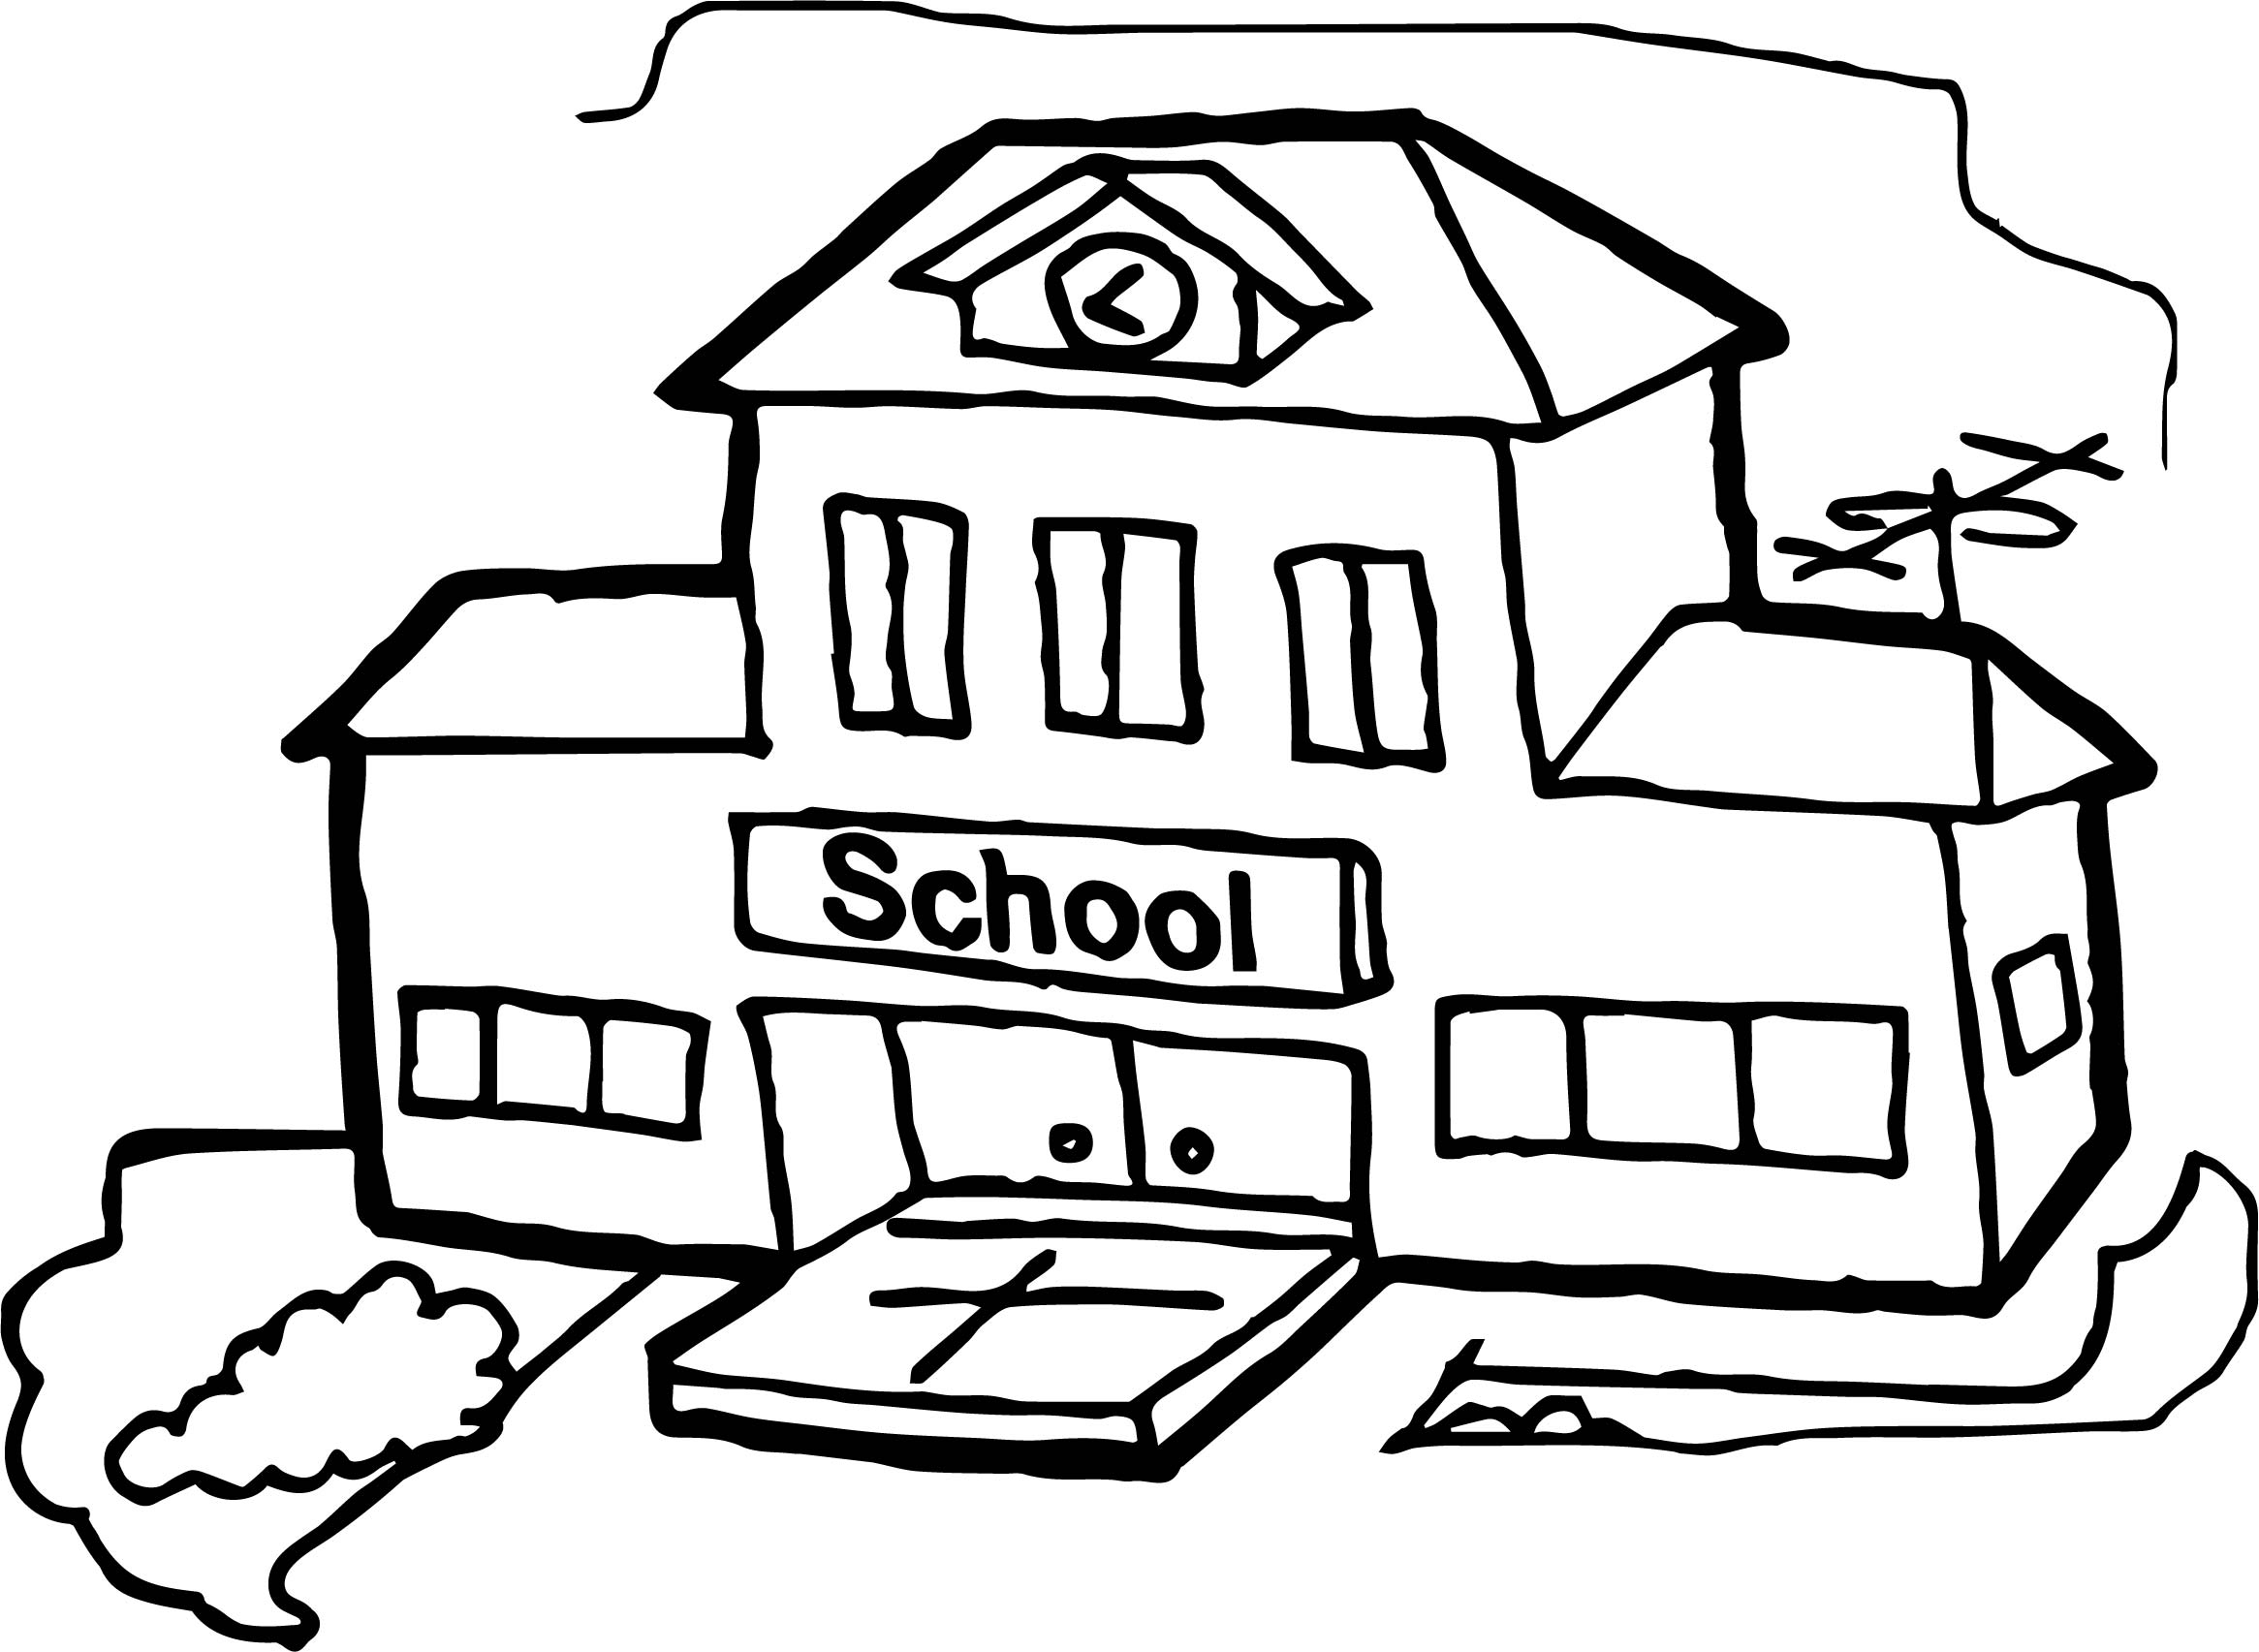 Simple School House Coloring Pages Real Pictures Of Rudolph the Red Collection Of Fresh First Day School Coloring Sheets Free Printable Pages Kids Printable